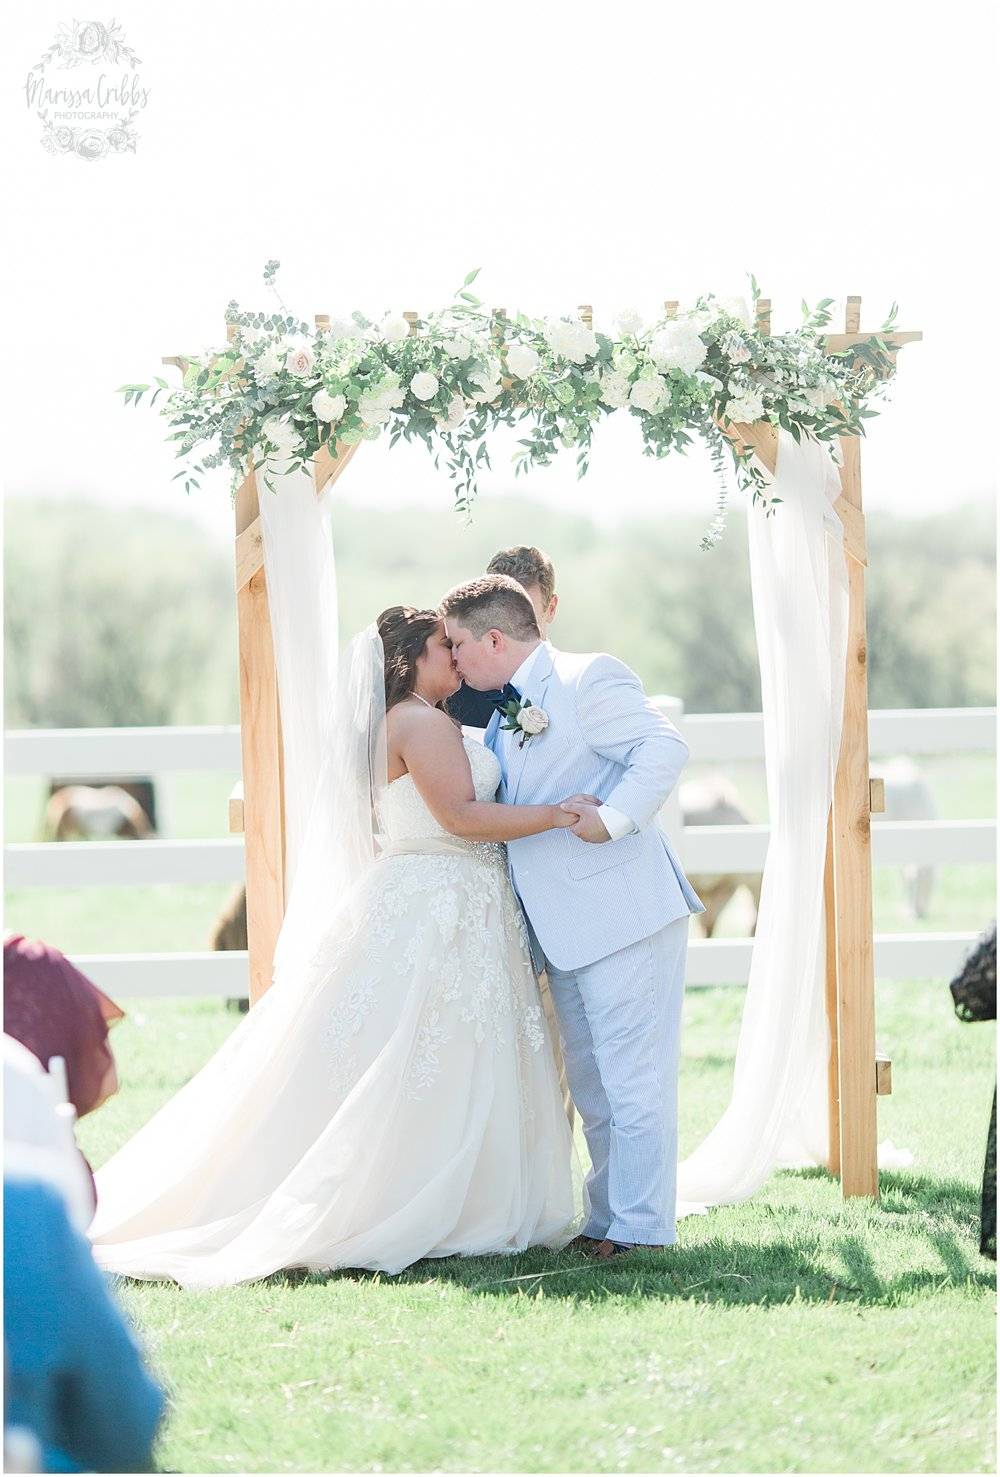 ANDREA & MICHAEL WEDDING | HICKORY CREEK RANCH | MARISSA CRIBBS PHOTOGRAPHY_4874.jpg